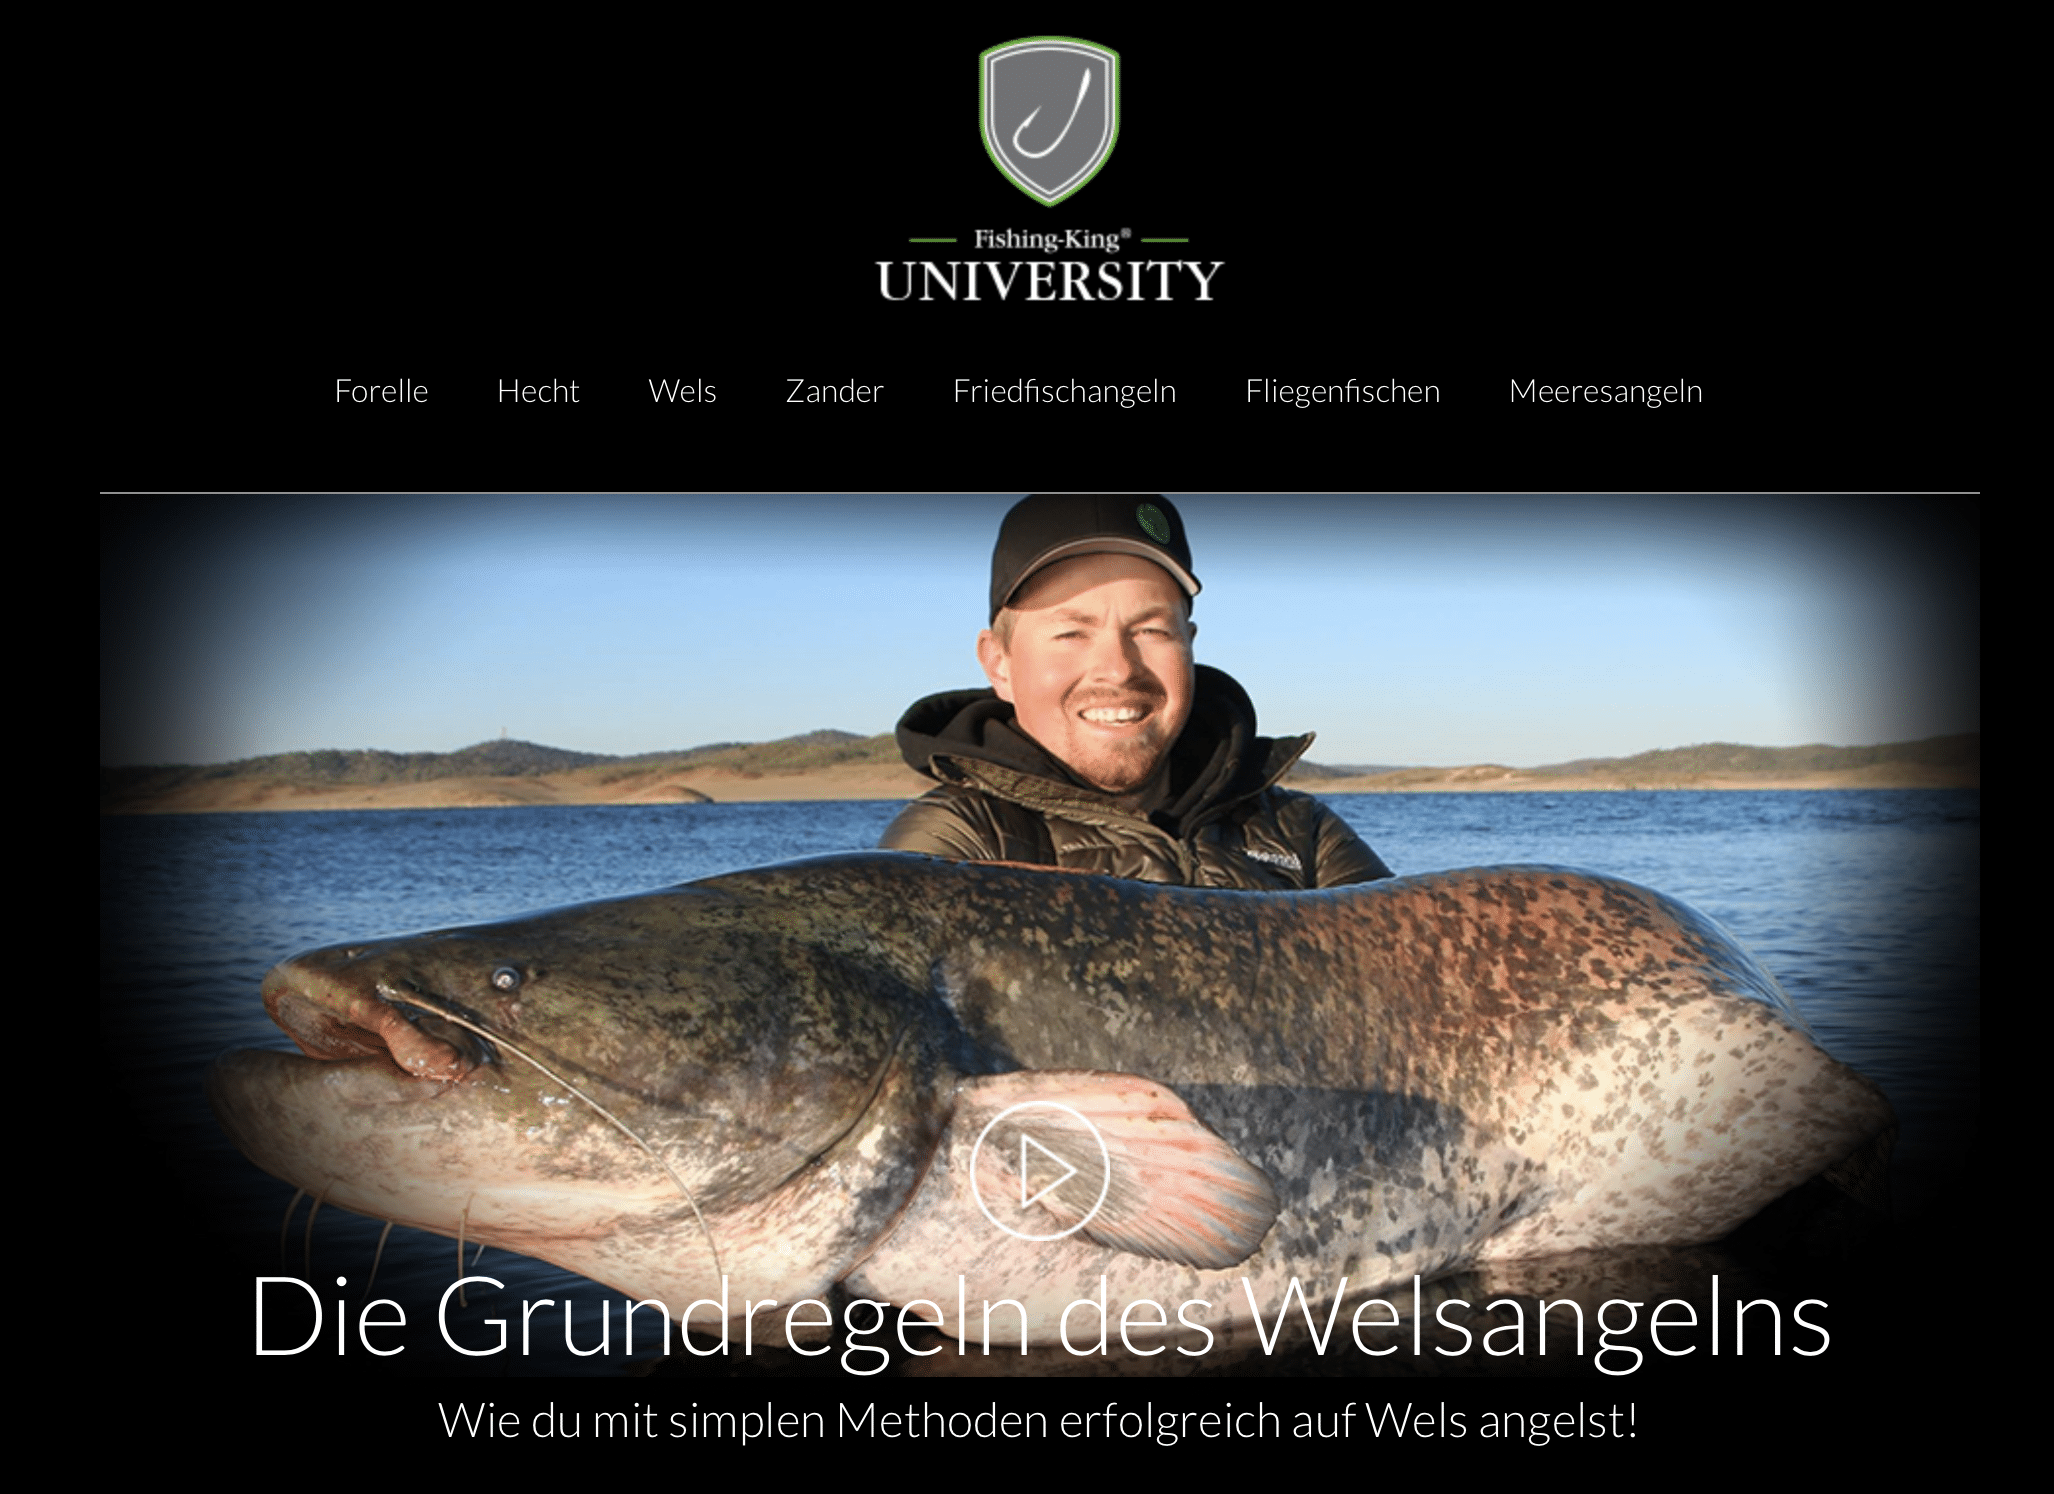 Wels Fishing-King-University Carsten Zeck Angeln